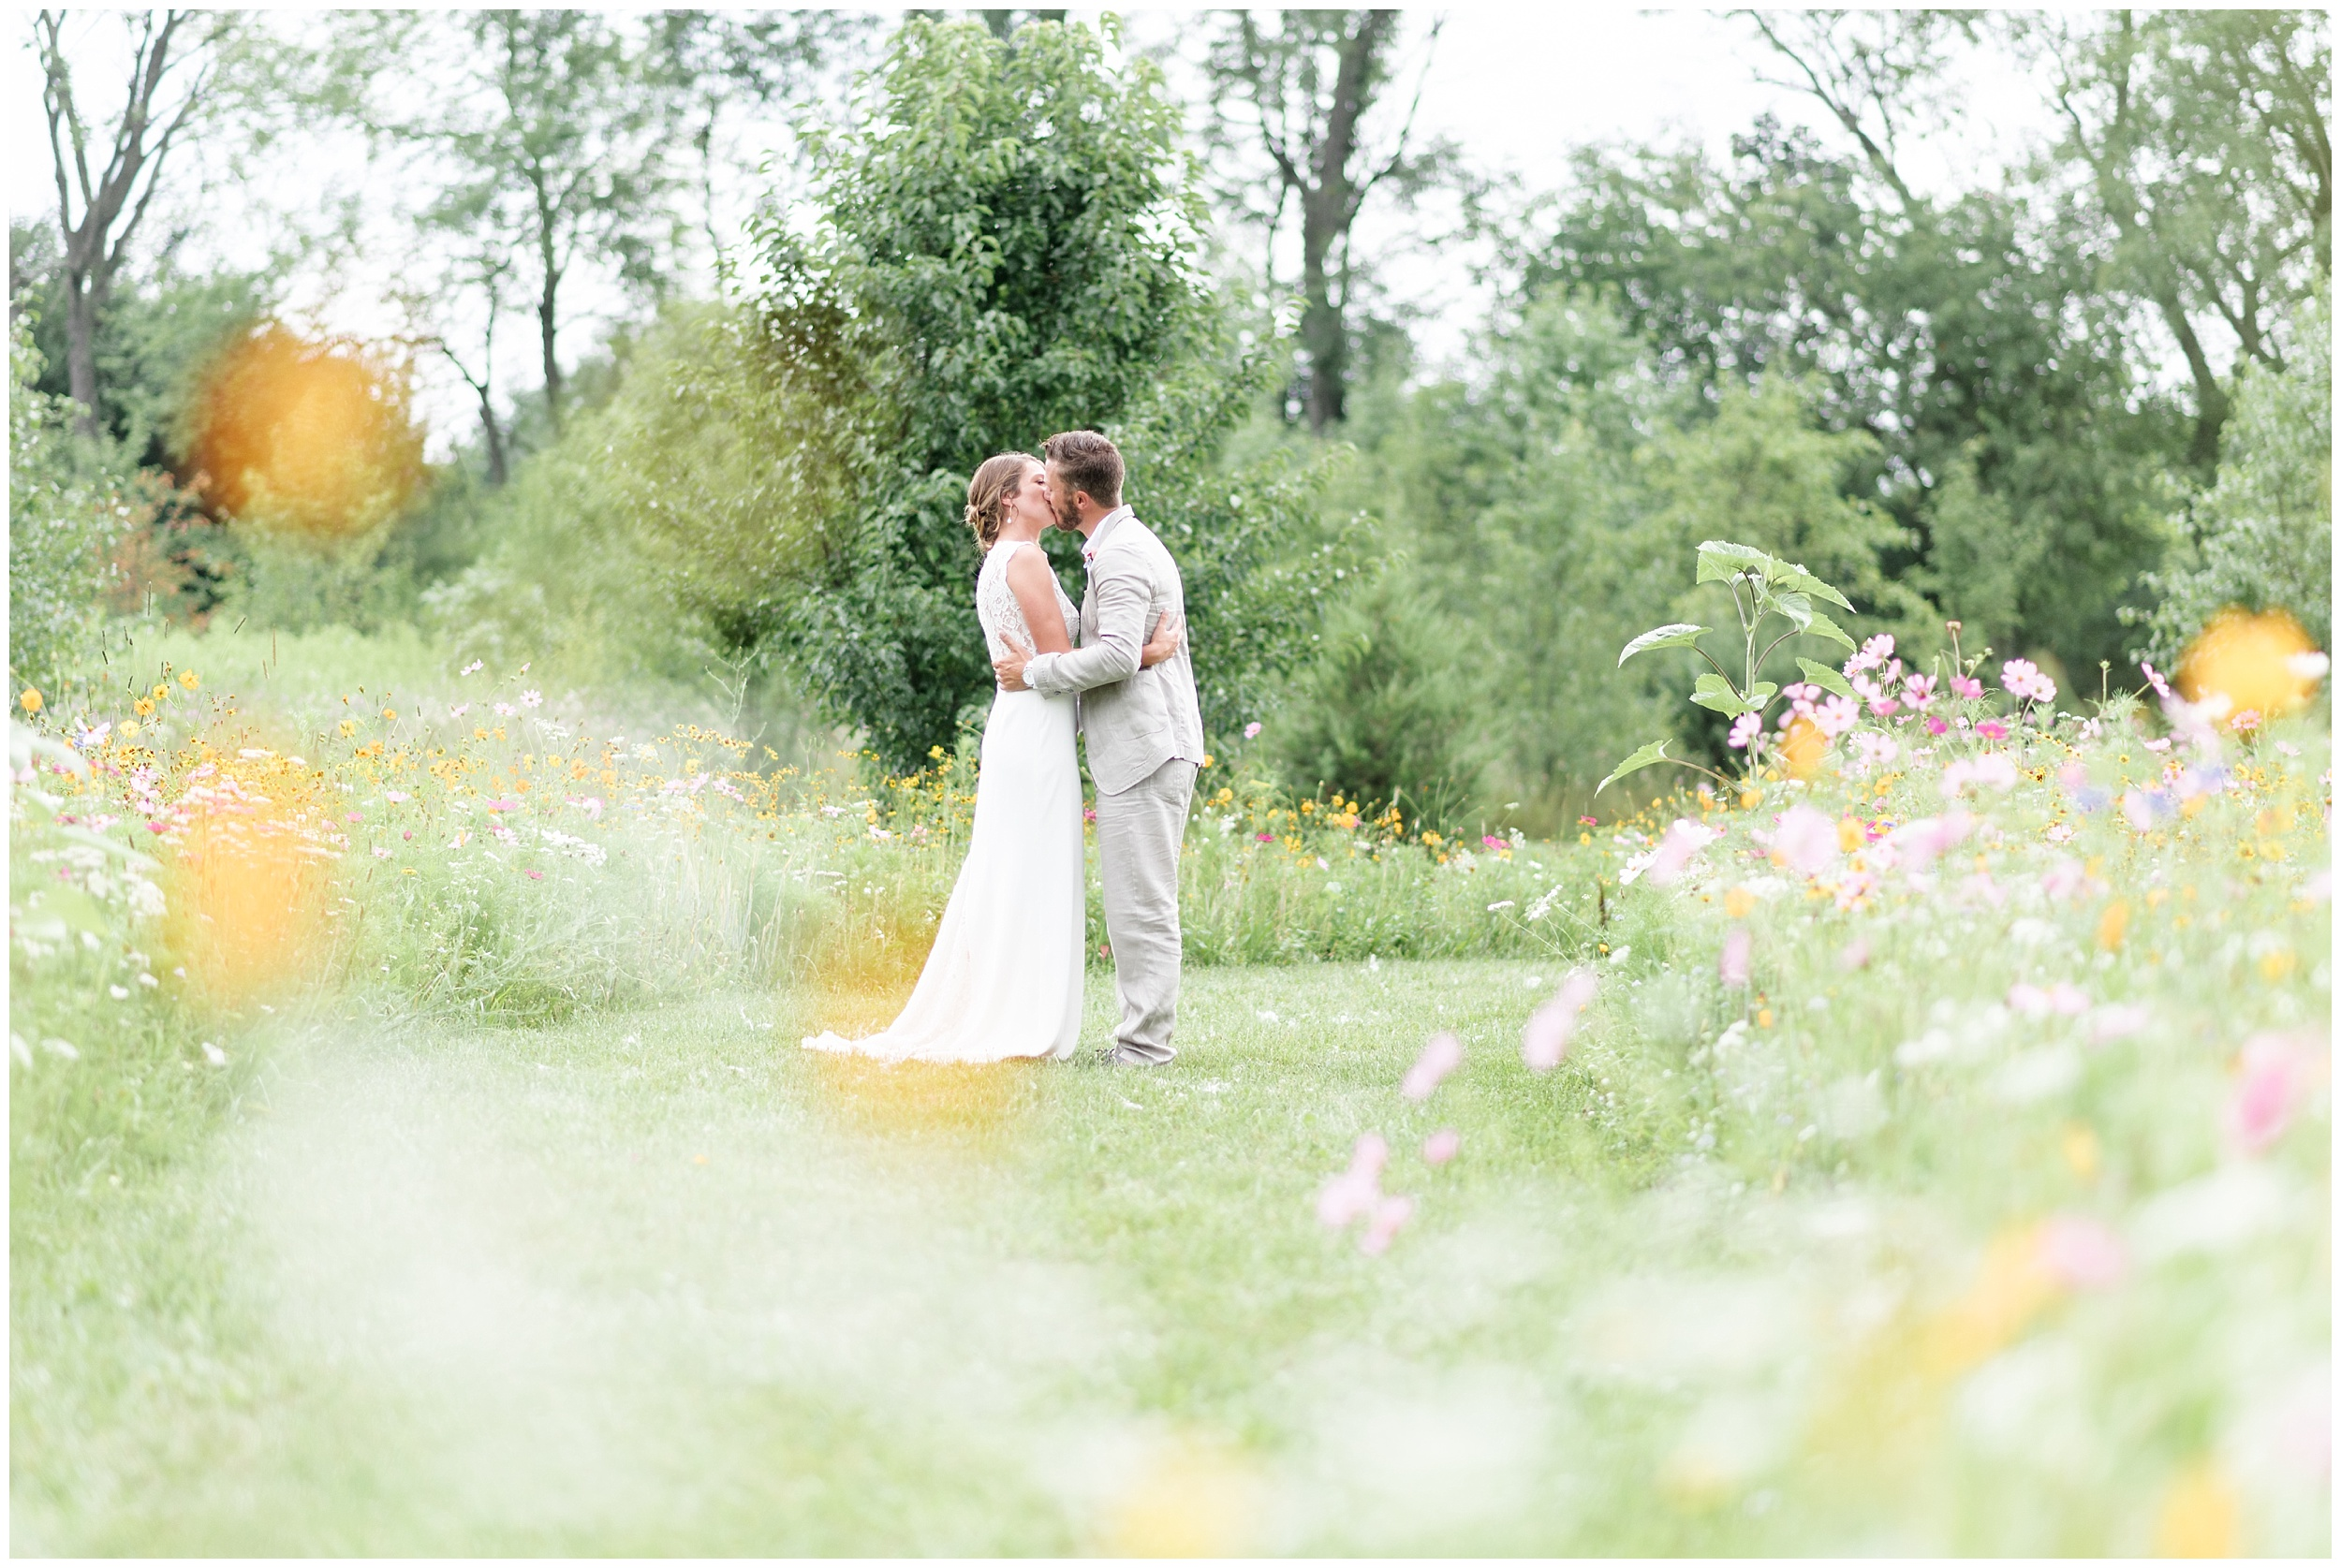 Whimsical-Ethereal-July-Kalamazoo-Wedding-Bright-Airy-Documentary-Milwaukee-Photographer_0067.jpg